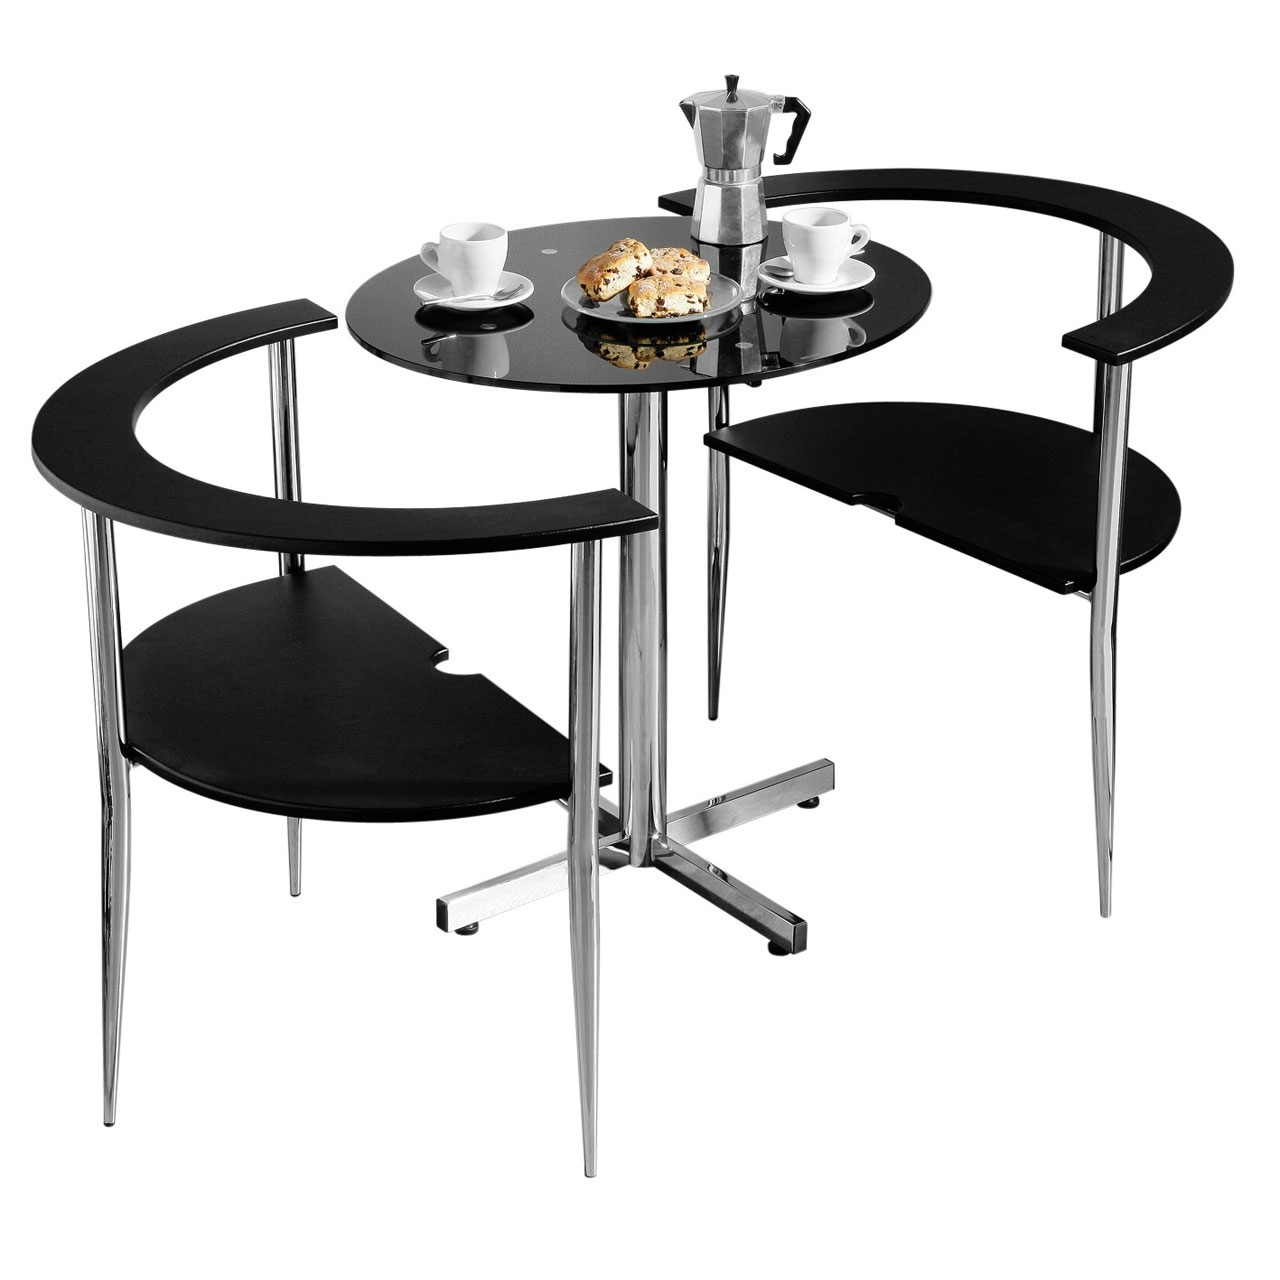 Popular Dining Tables For Two For 3Pc Round Love Dining Set Black Tempered Glass Table Top 2 Chairs (Gallery 5 of 25)